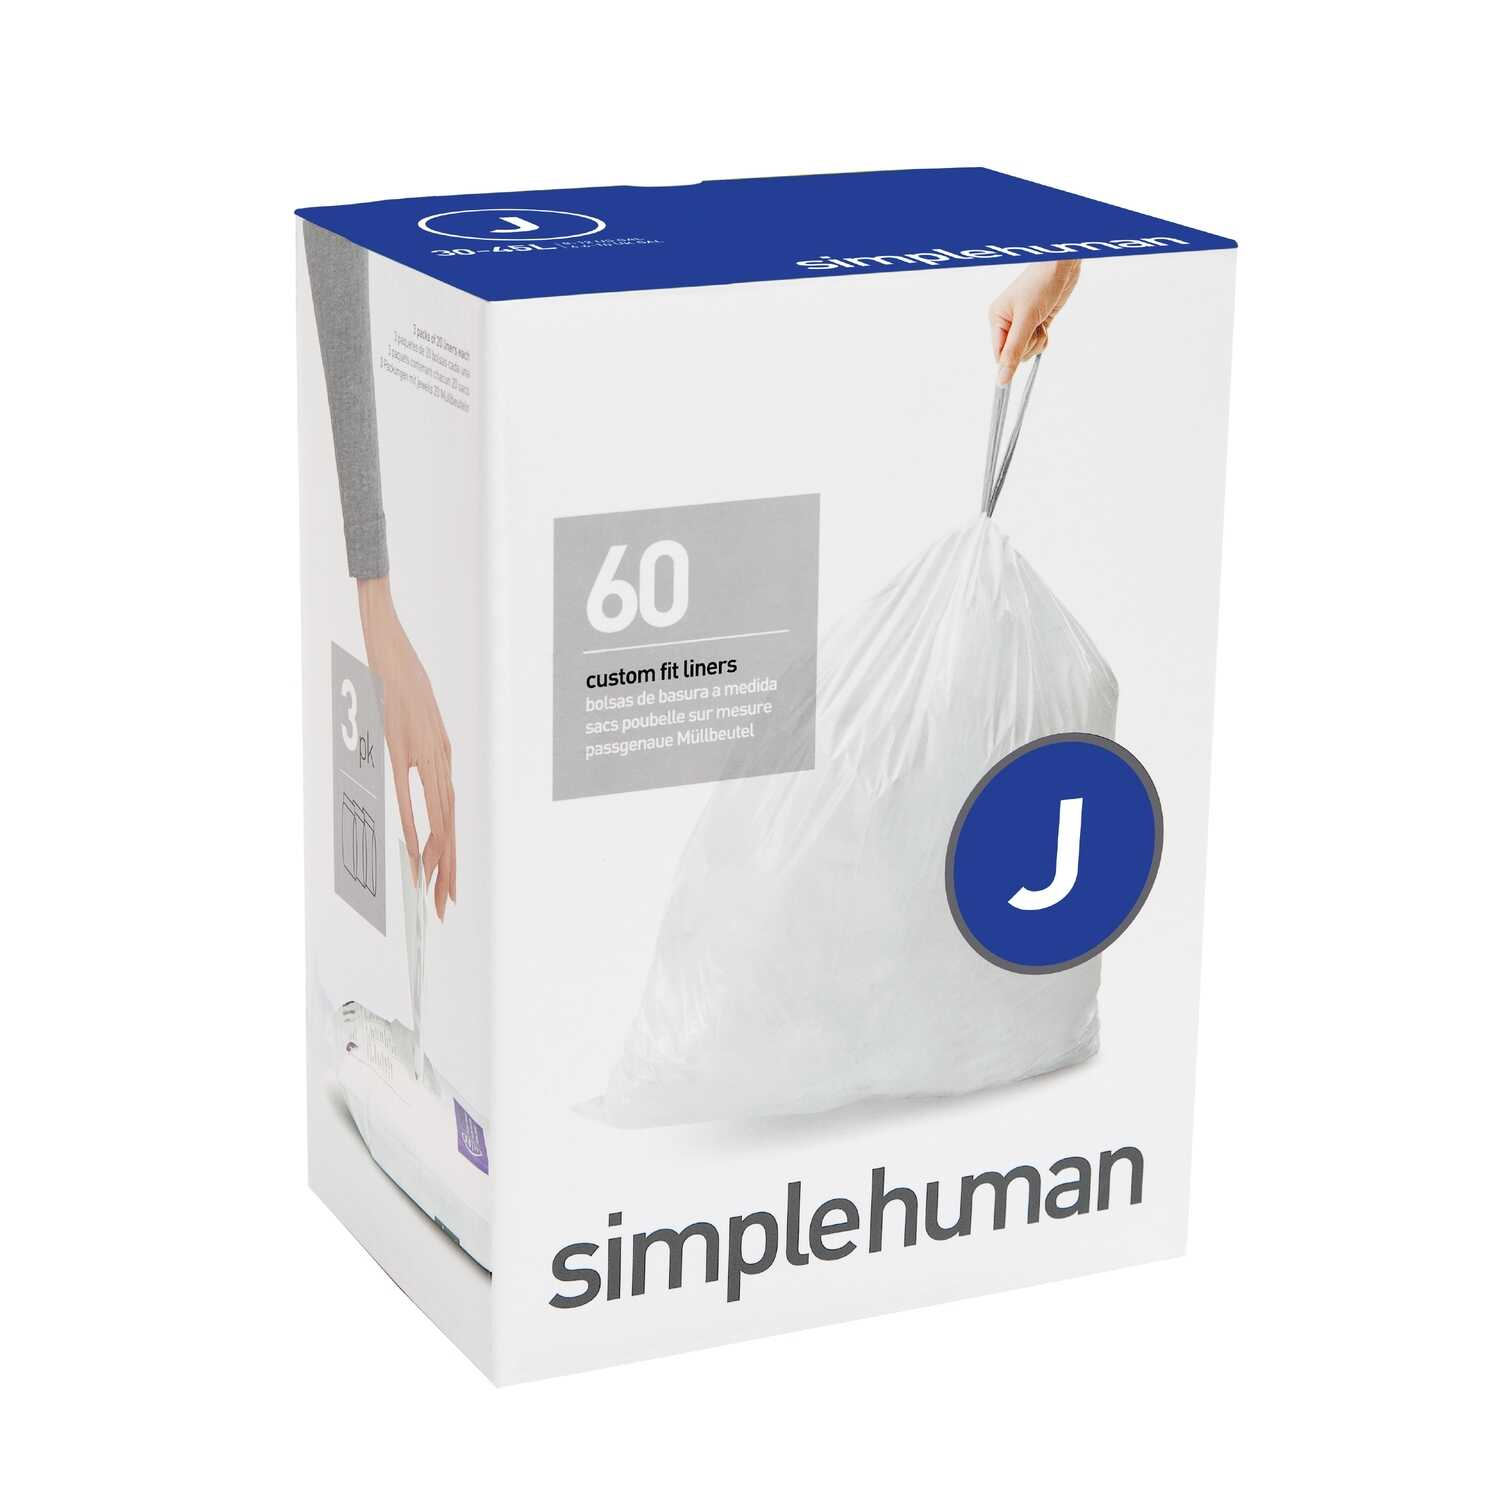 simplehuman  Custom Fit Code J  8-12 gal. Trash Bag Liner  Drawstring  60 pk